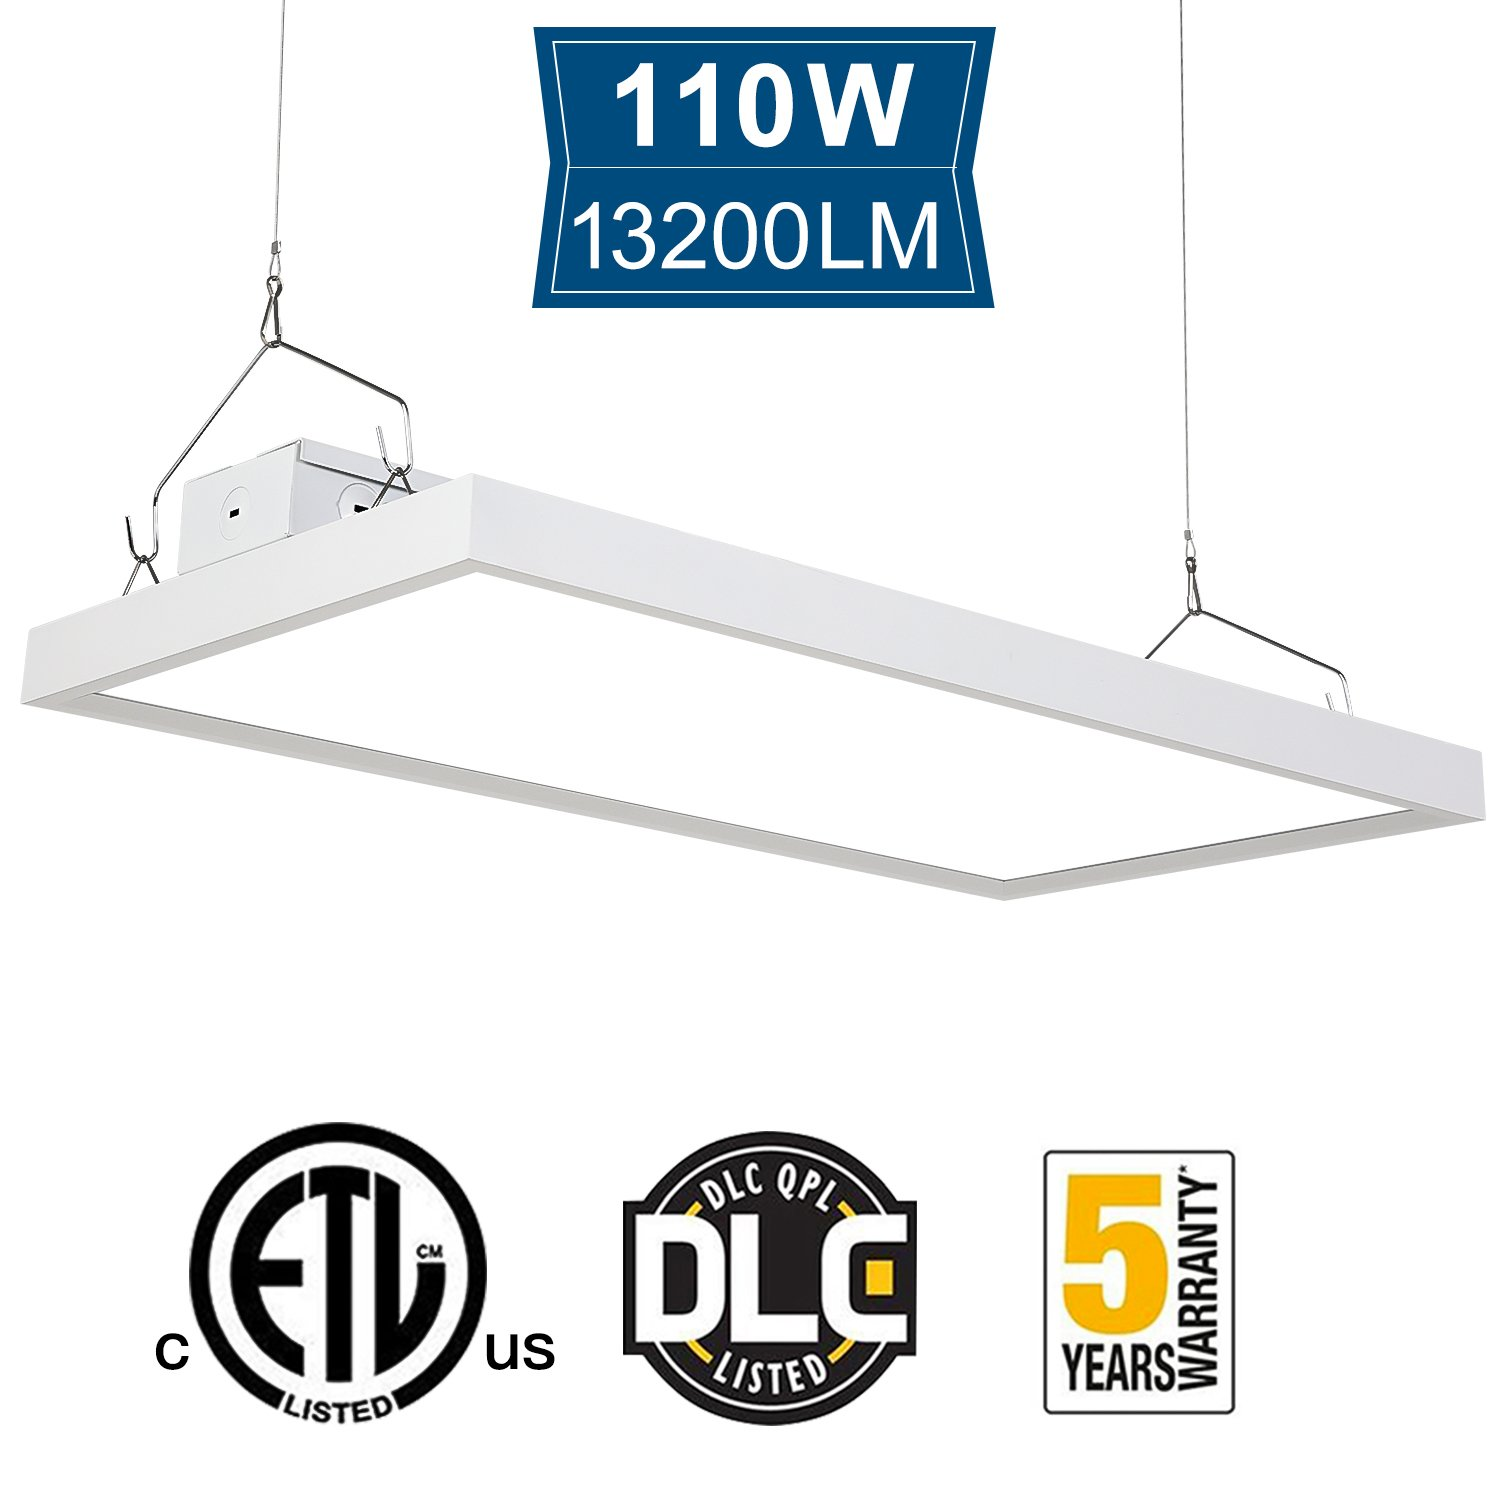 Amico 110W 2FT High Bay Light Fixture, 5000K 13200 Lumens Dimmable Commercial Grade Indoor Industrial Lights, DLC & ETL-Listed, Warehouse, Factory, Garage, Shop Light (High Bay 110W)